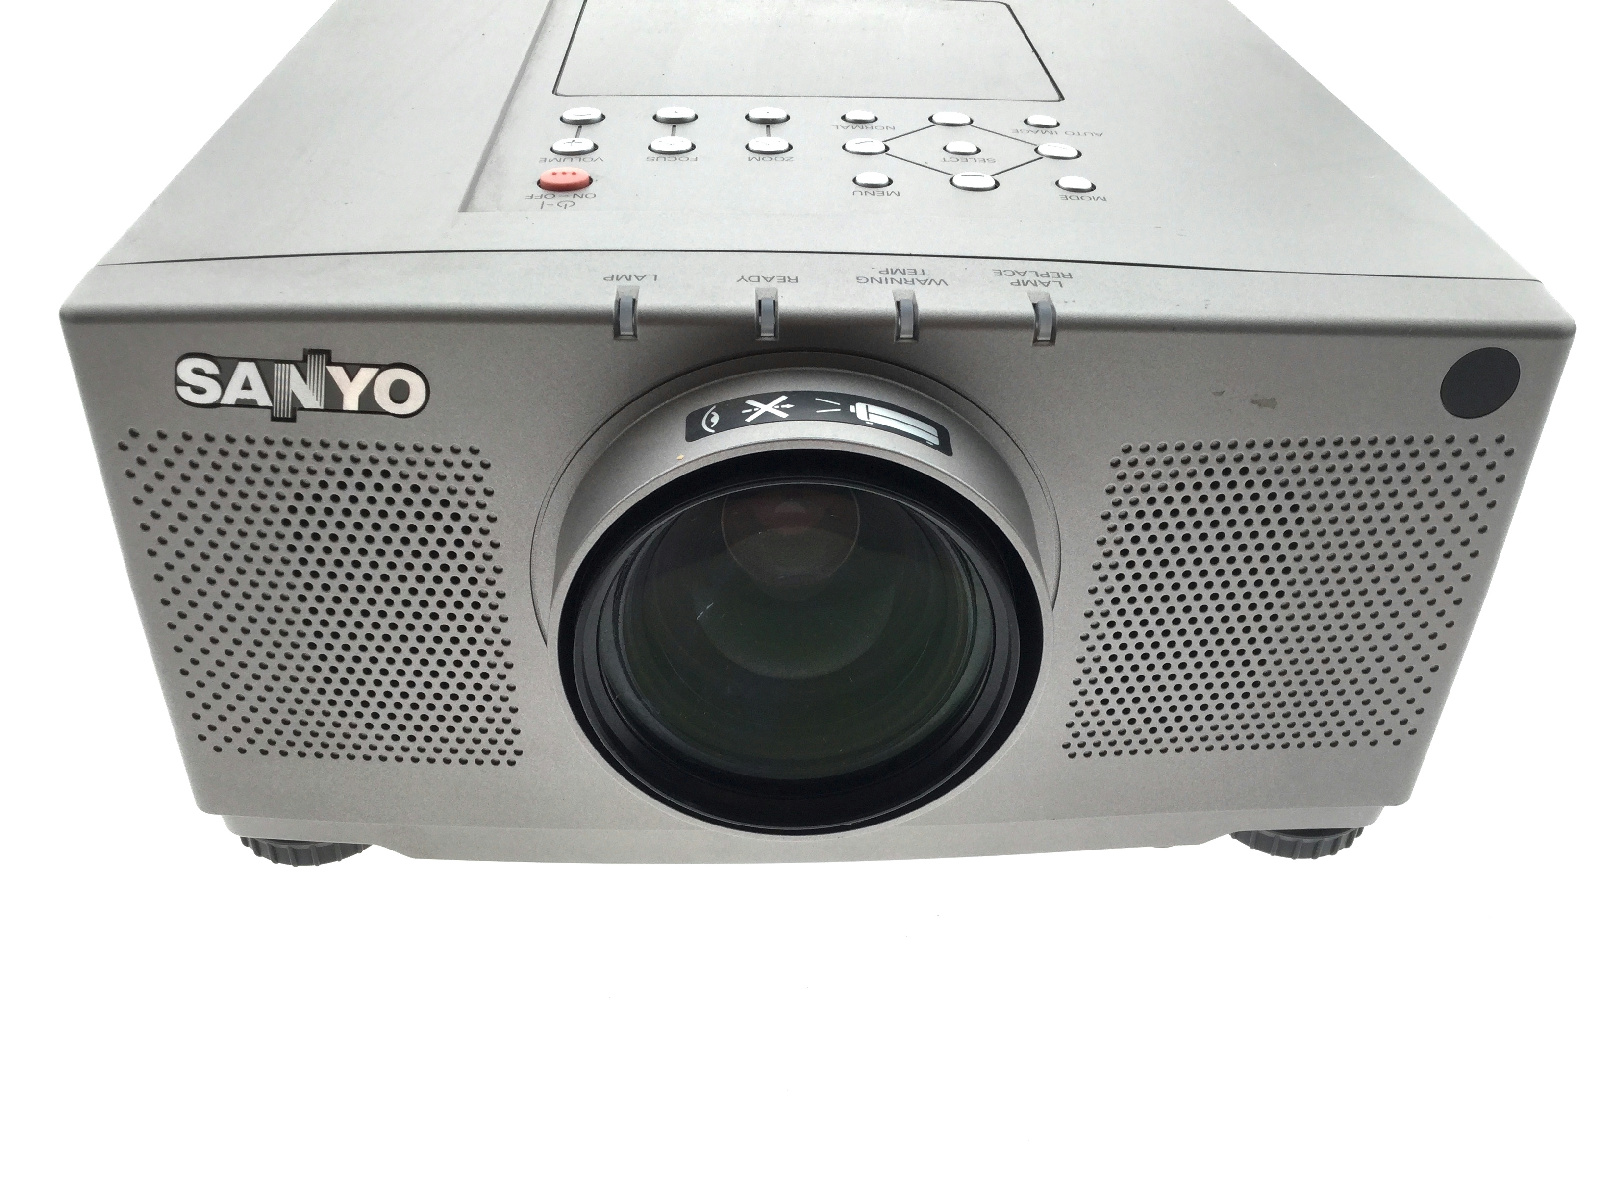 sanyo pro xtrax plc xp17n lcd video projector power tested ebay. Black Bedroom Furniture Sets. Home Design Ideas